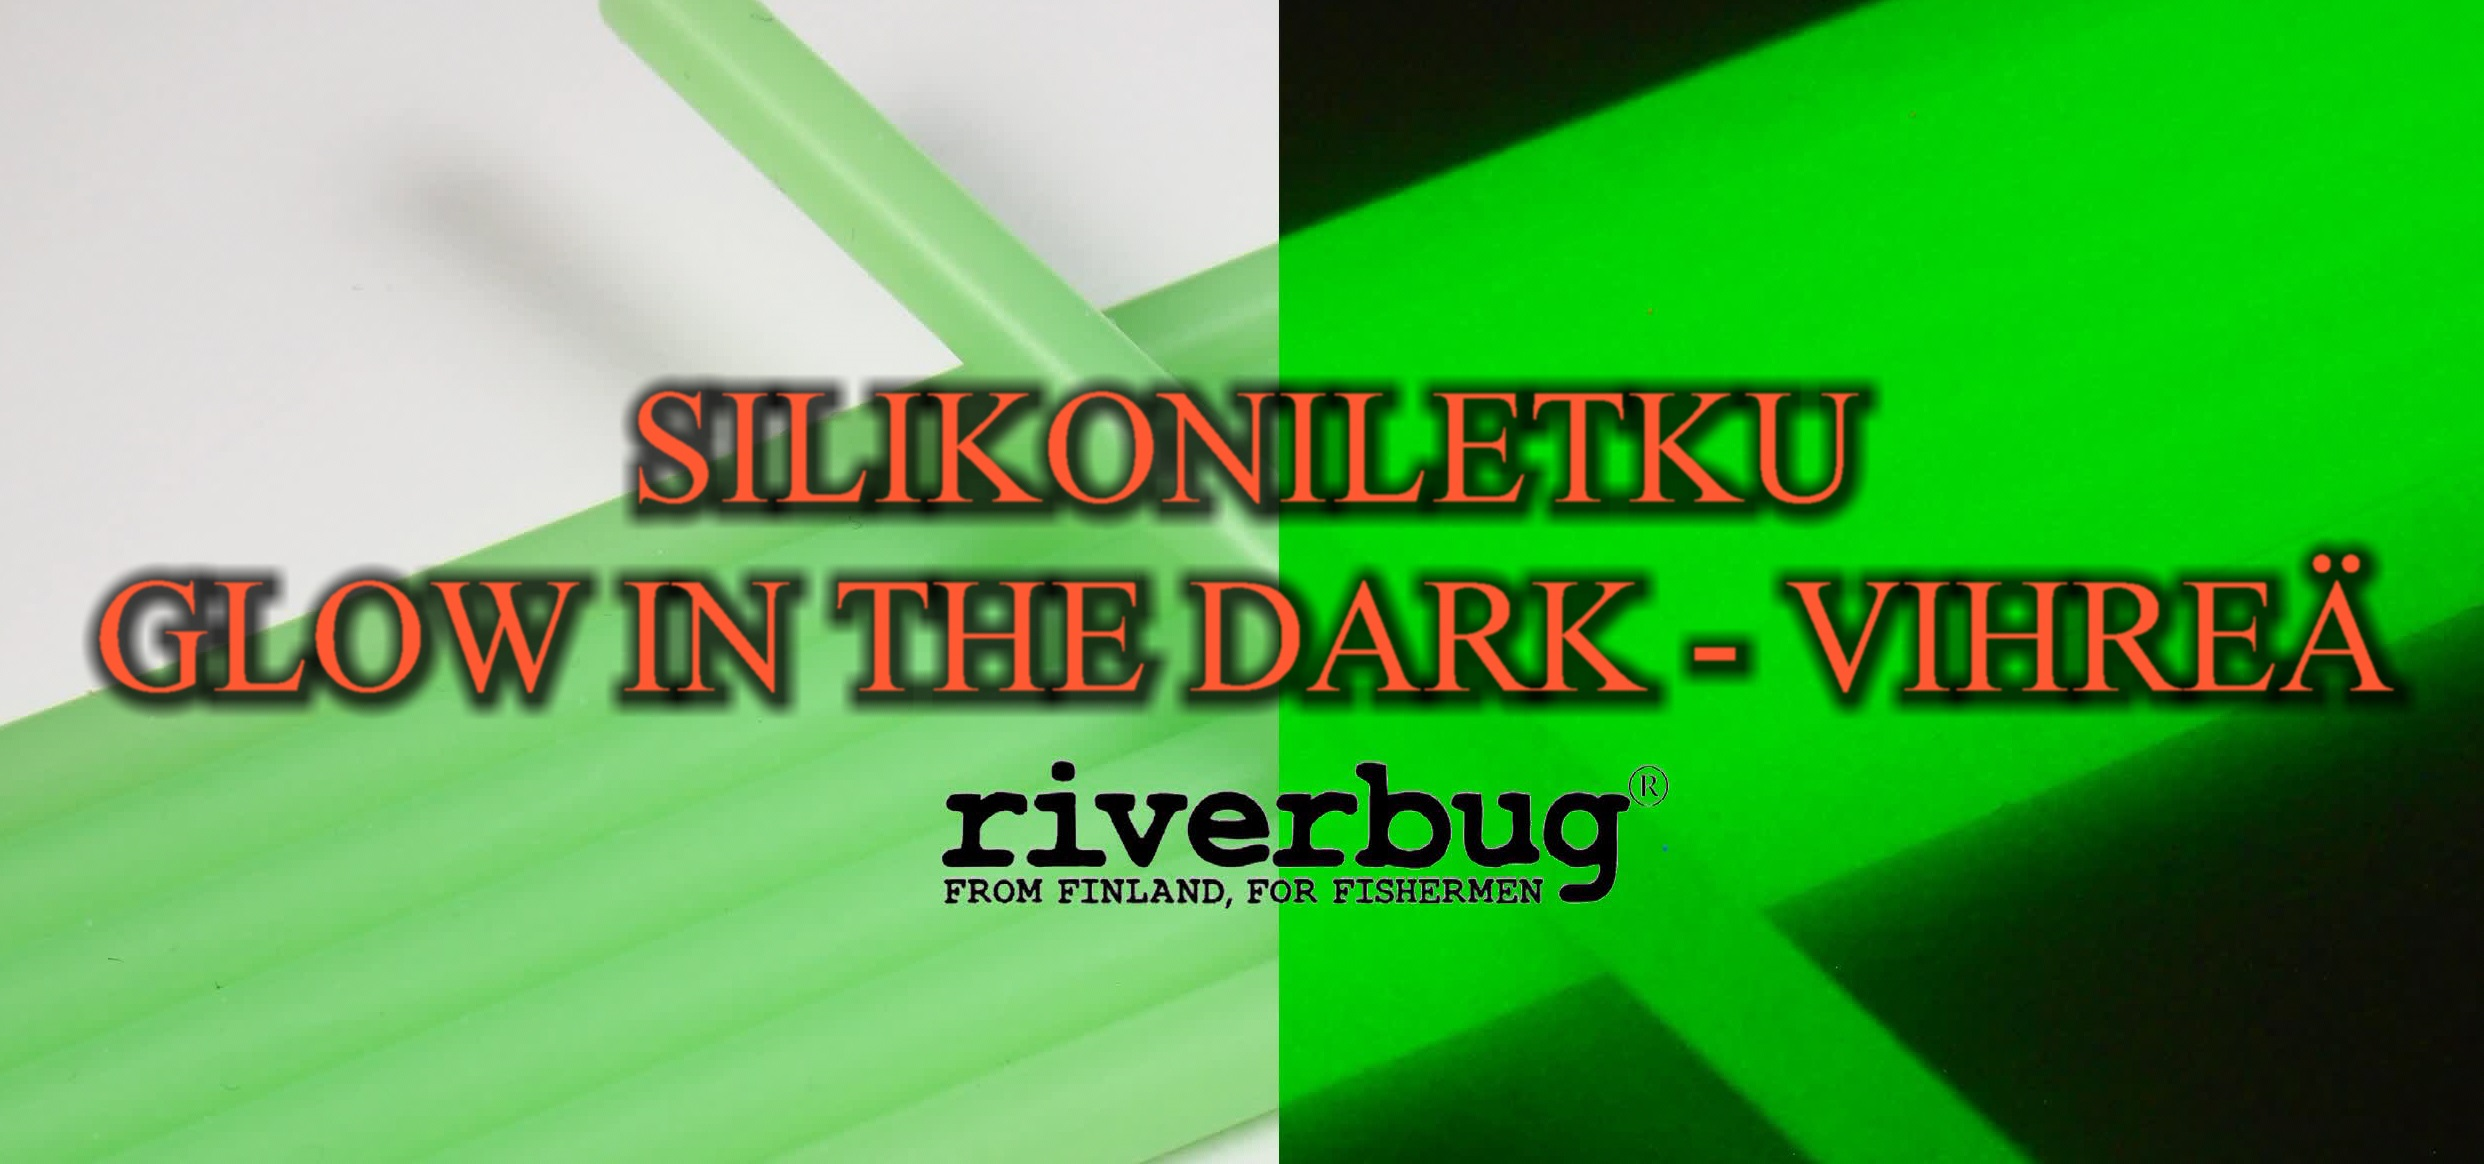 RiverBug Silicone Tubing - Glow in The Dark Green. Silikoniletku Vihreä.